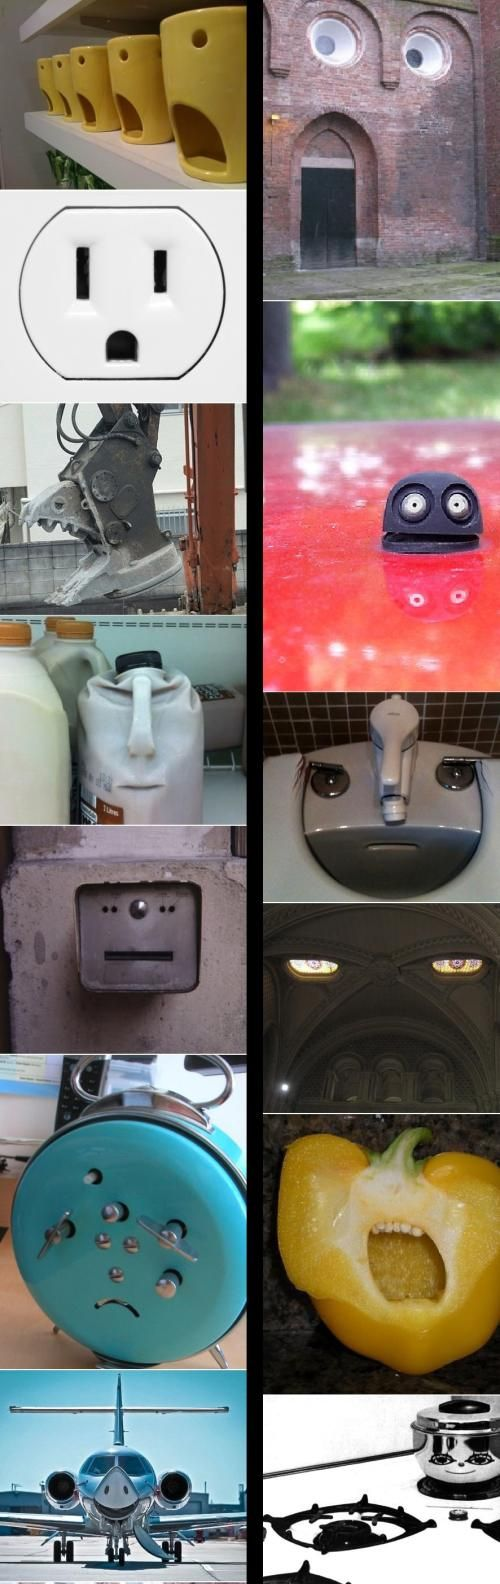 yess i'm so happy that i'm not the only one who see faces in everything....... everywhere......